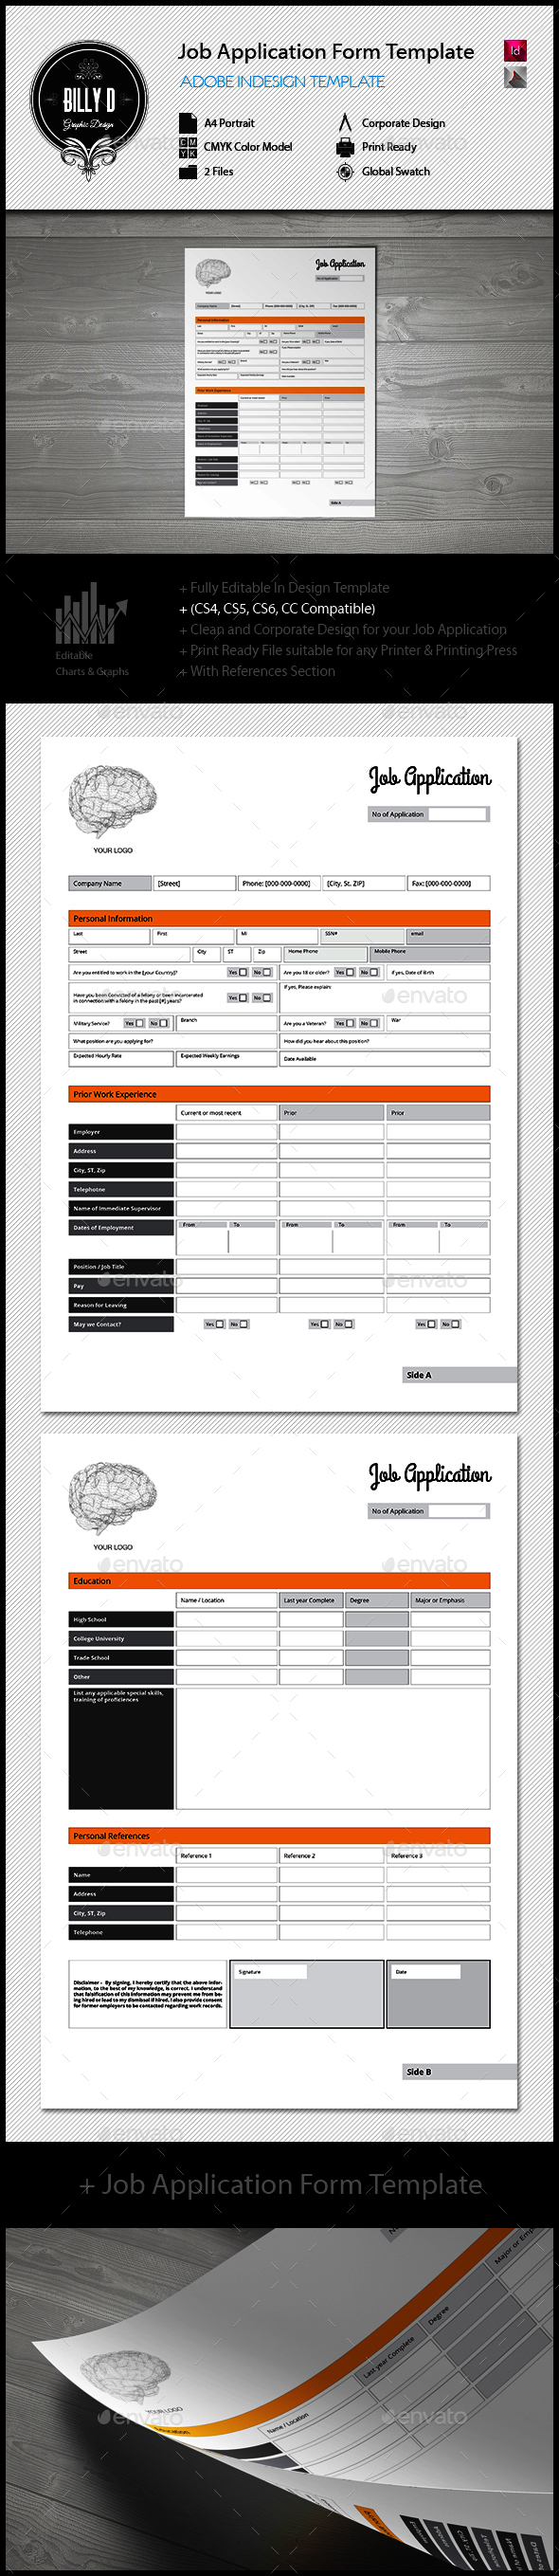 Pin by CC on Vis | Pinterest | Template and Print templates